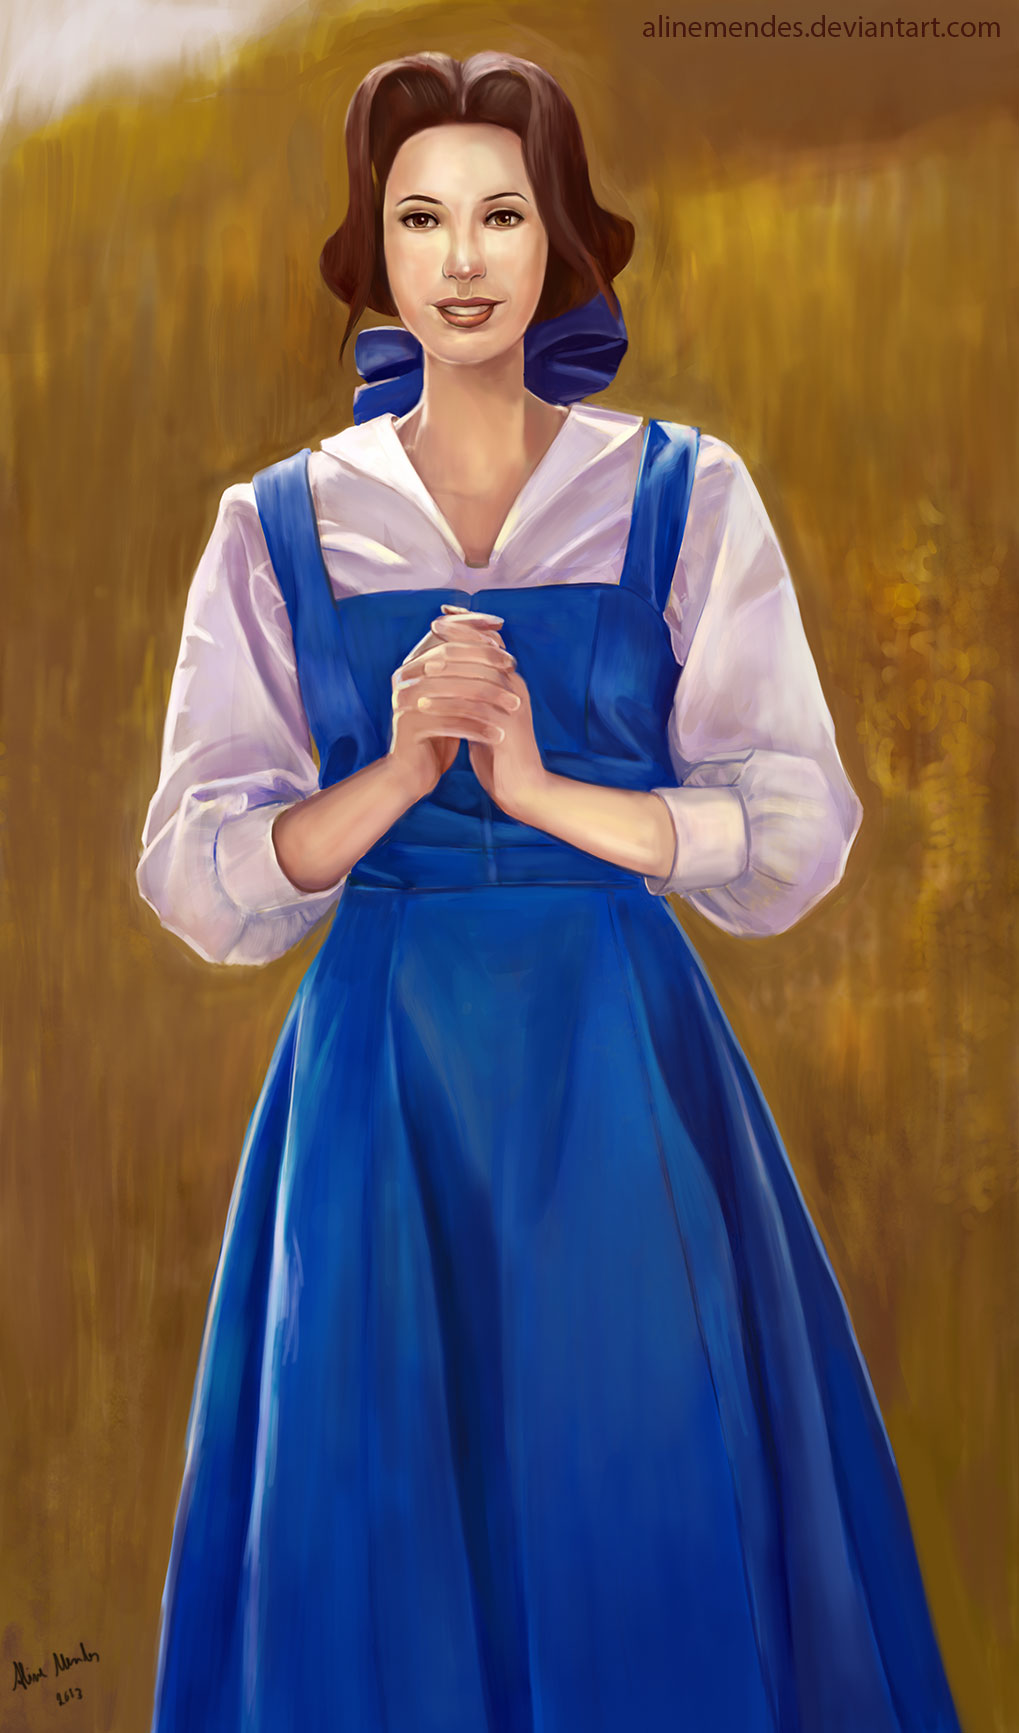 Belle with Blue Dress ...